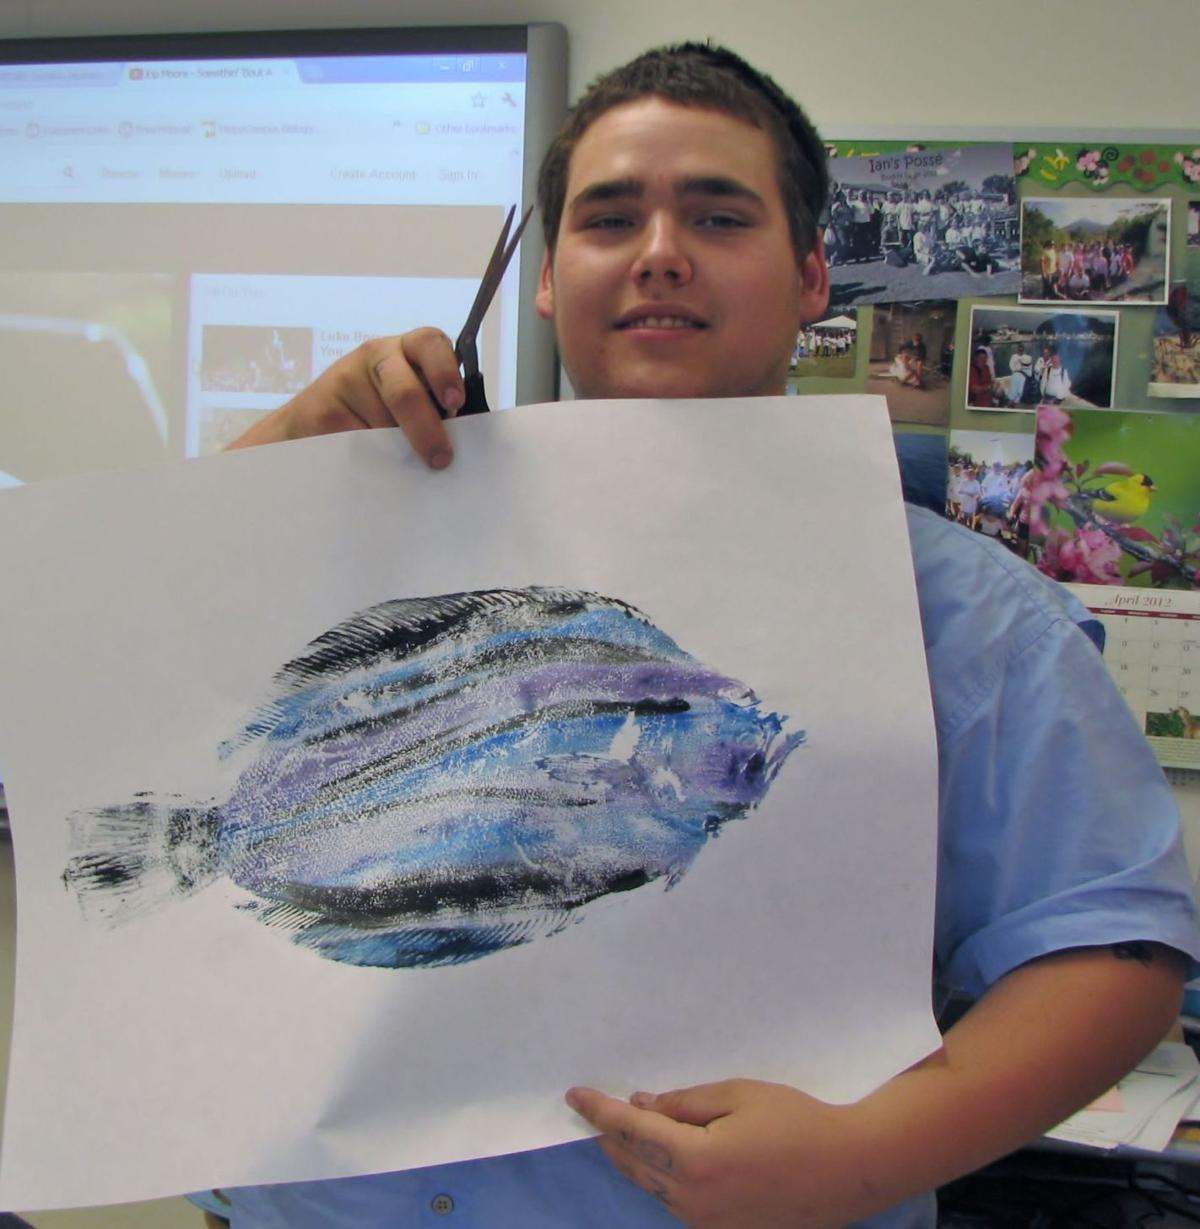 Science, art offer lessons